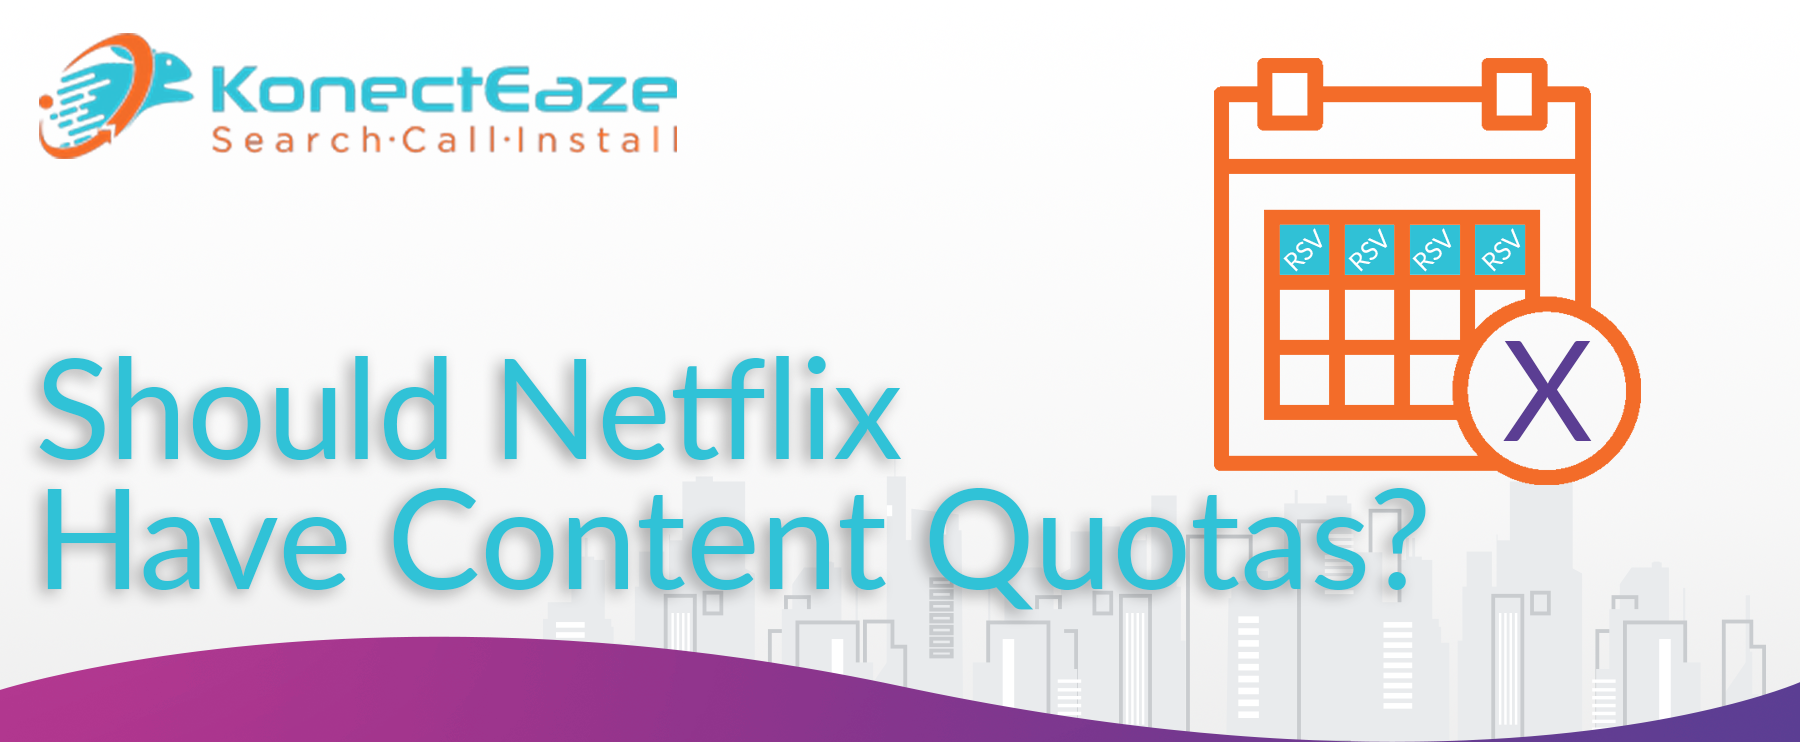 Should Netflix Have Content Quotas?